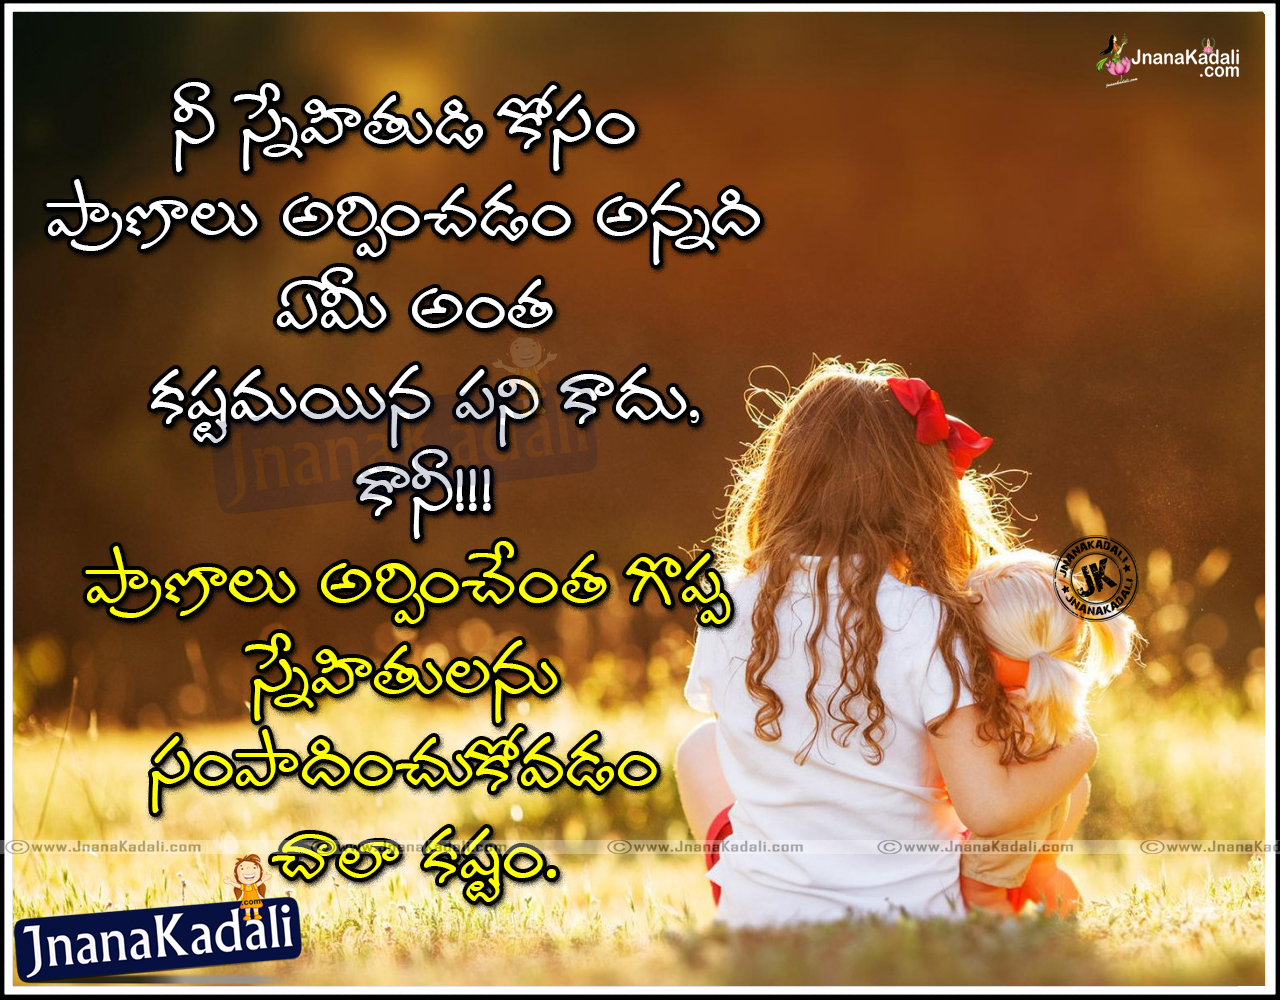 Quotes About Friendship With Images Friendship Day Quotes Messages Sms In Telugu  Lovely Telugu